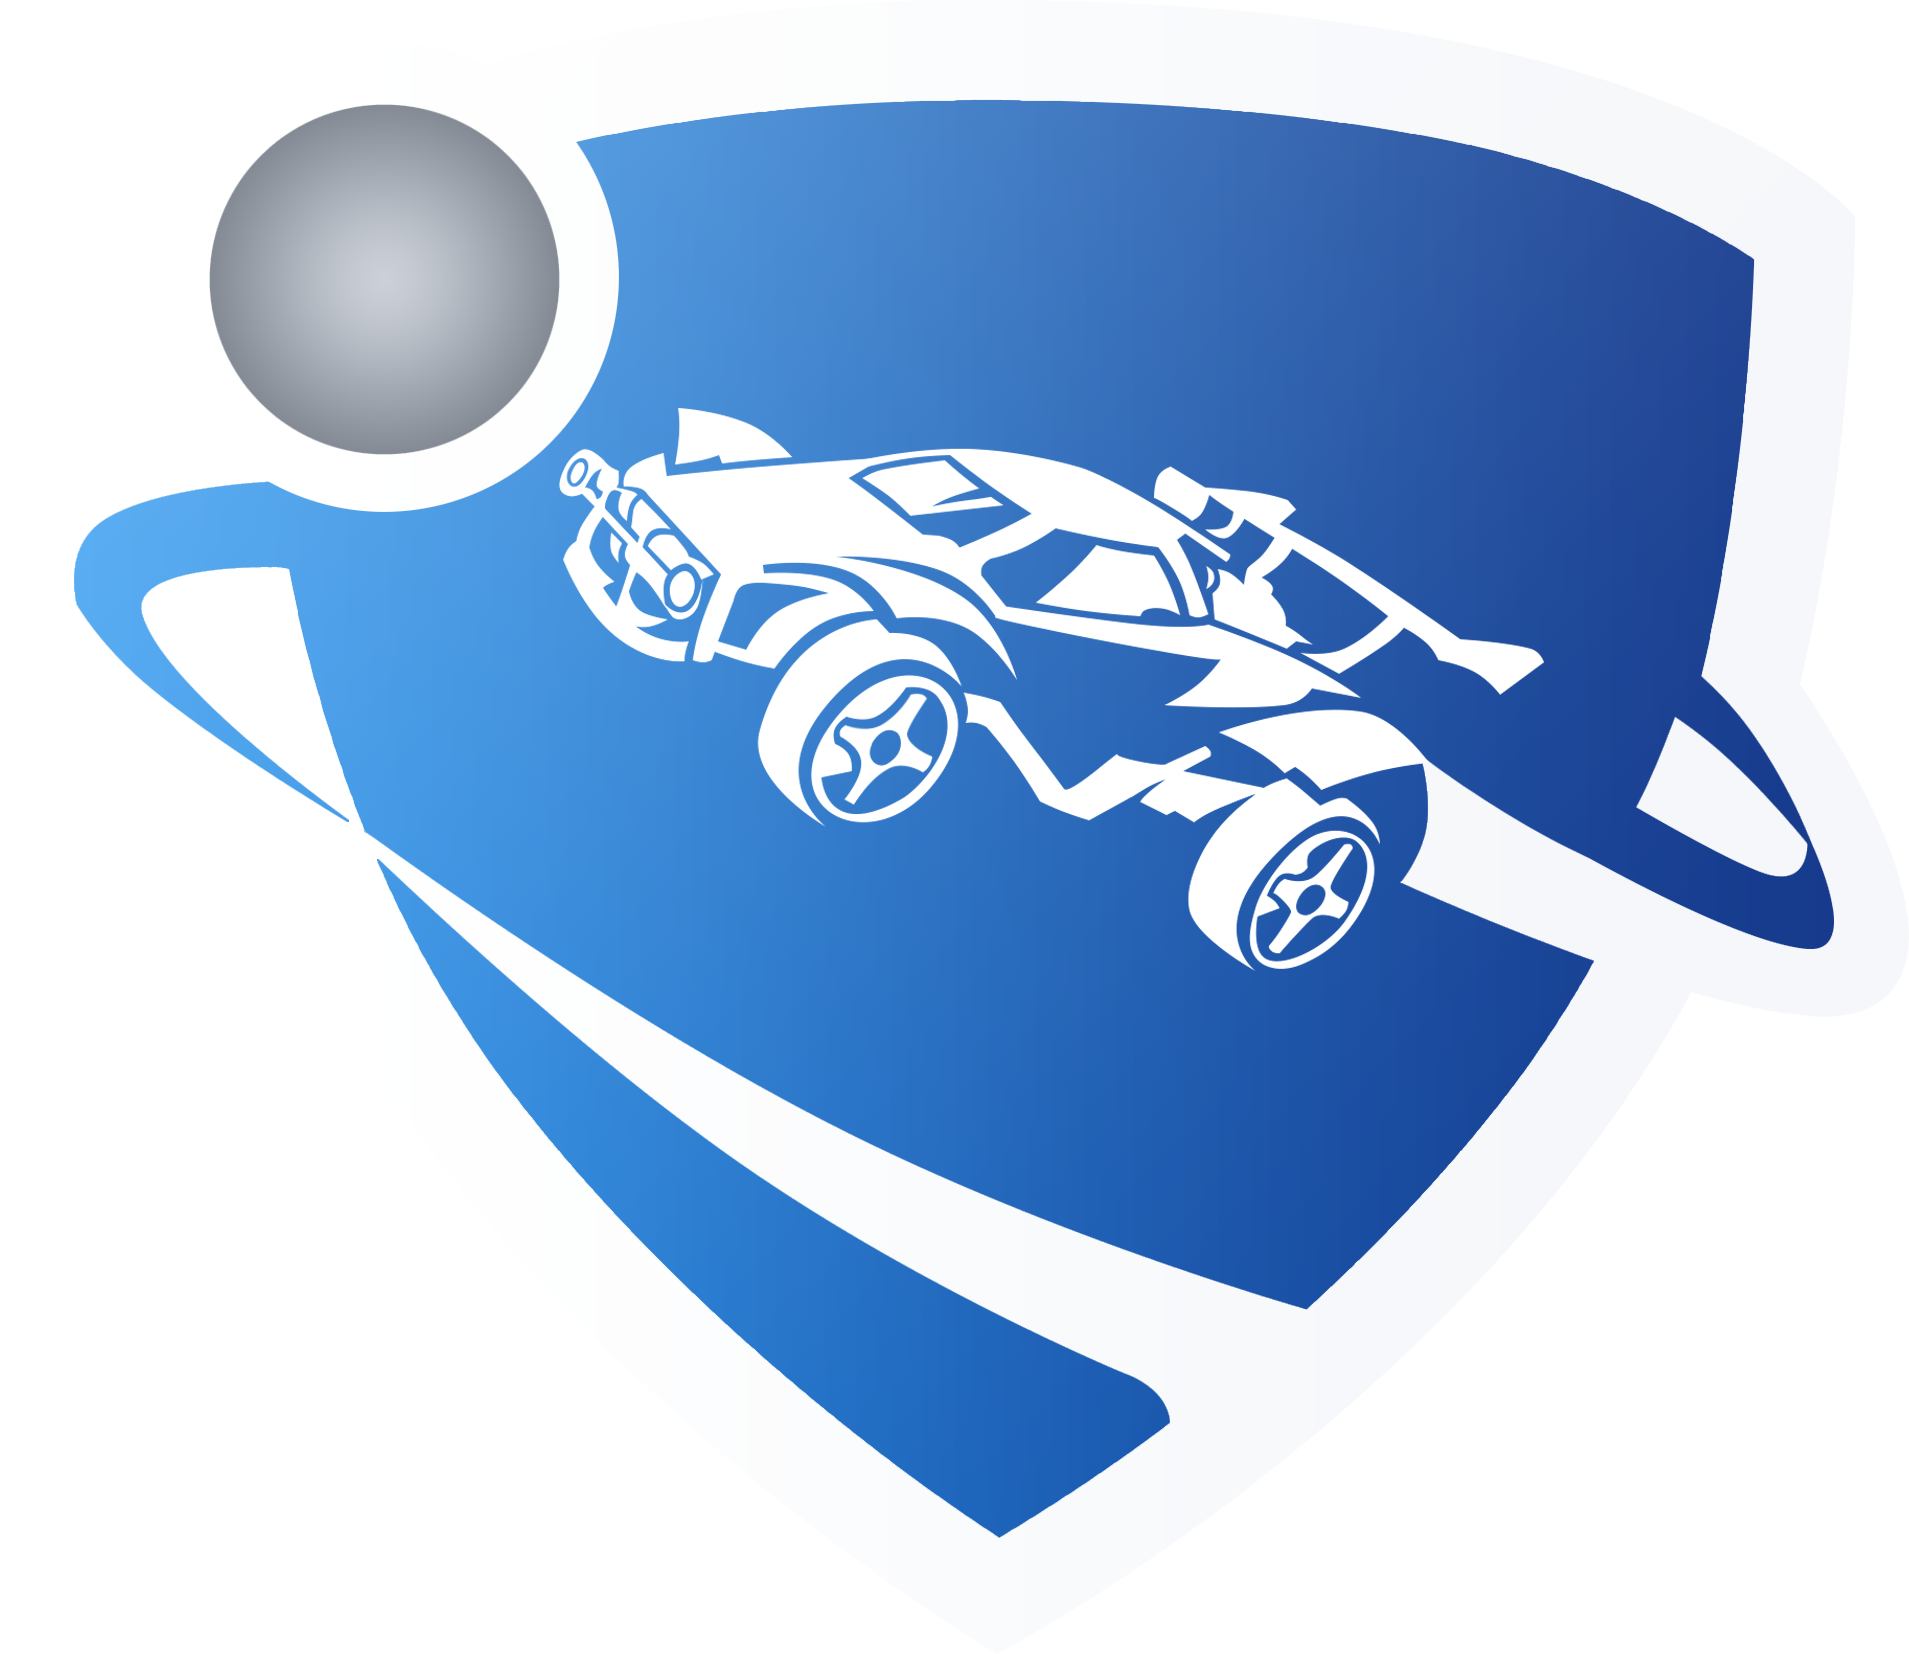 lowest ping to rocket league